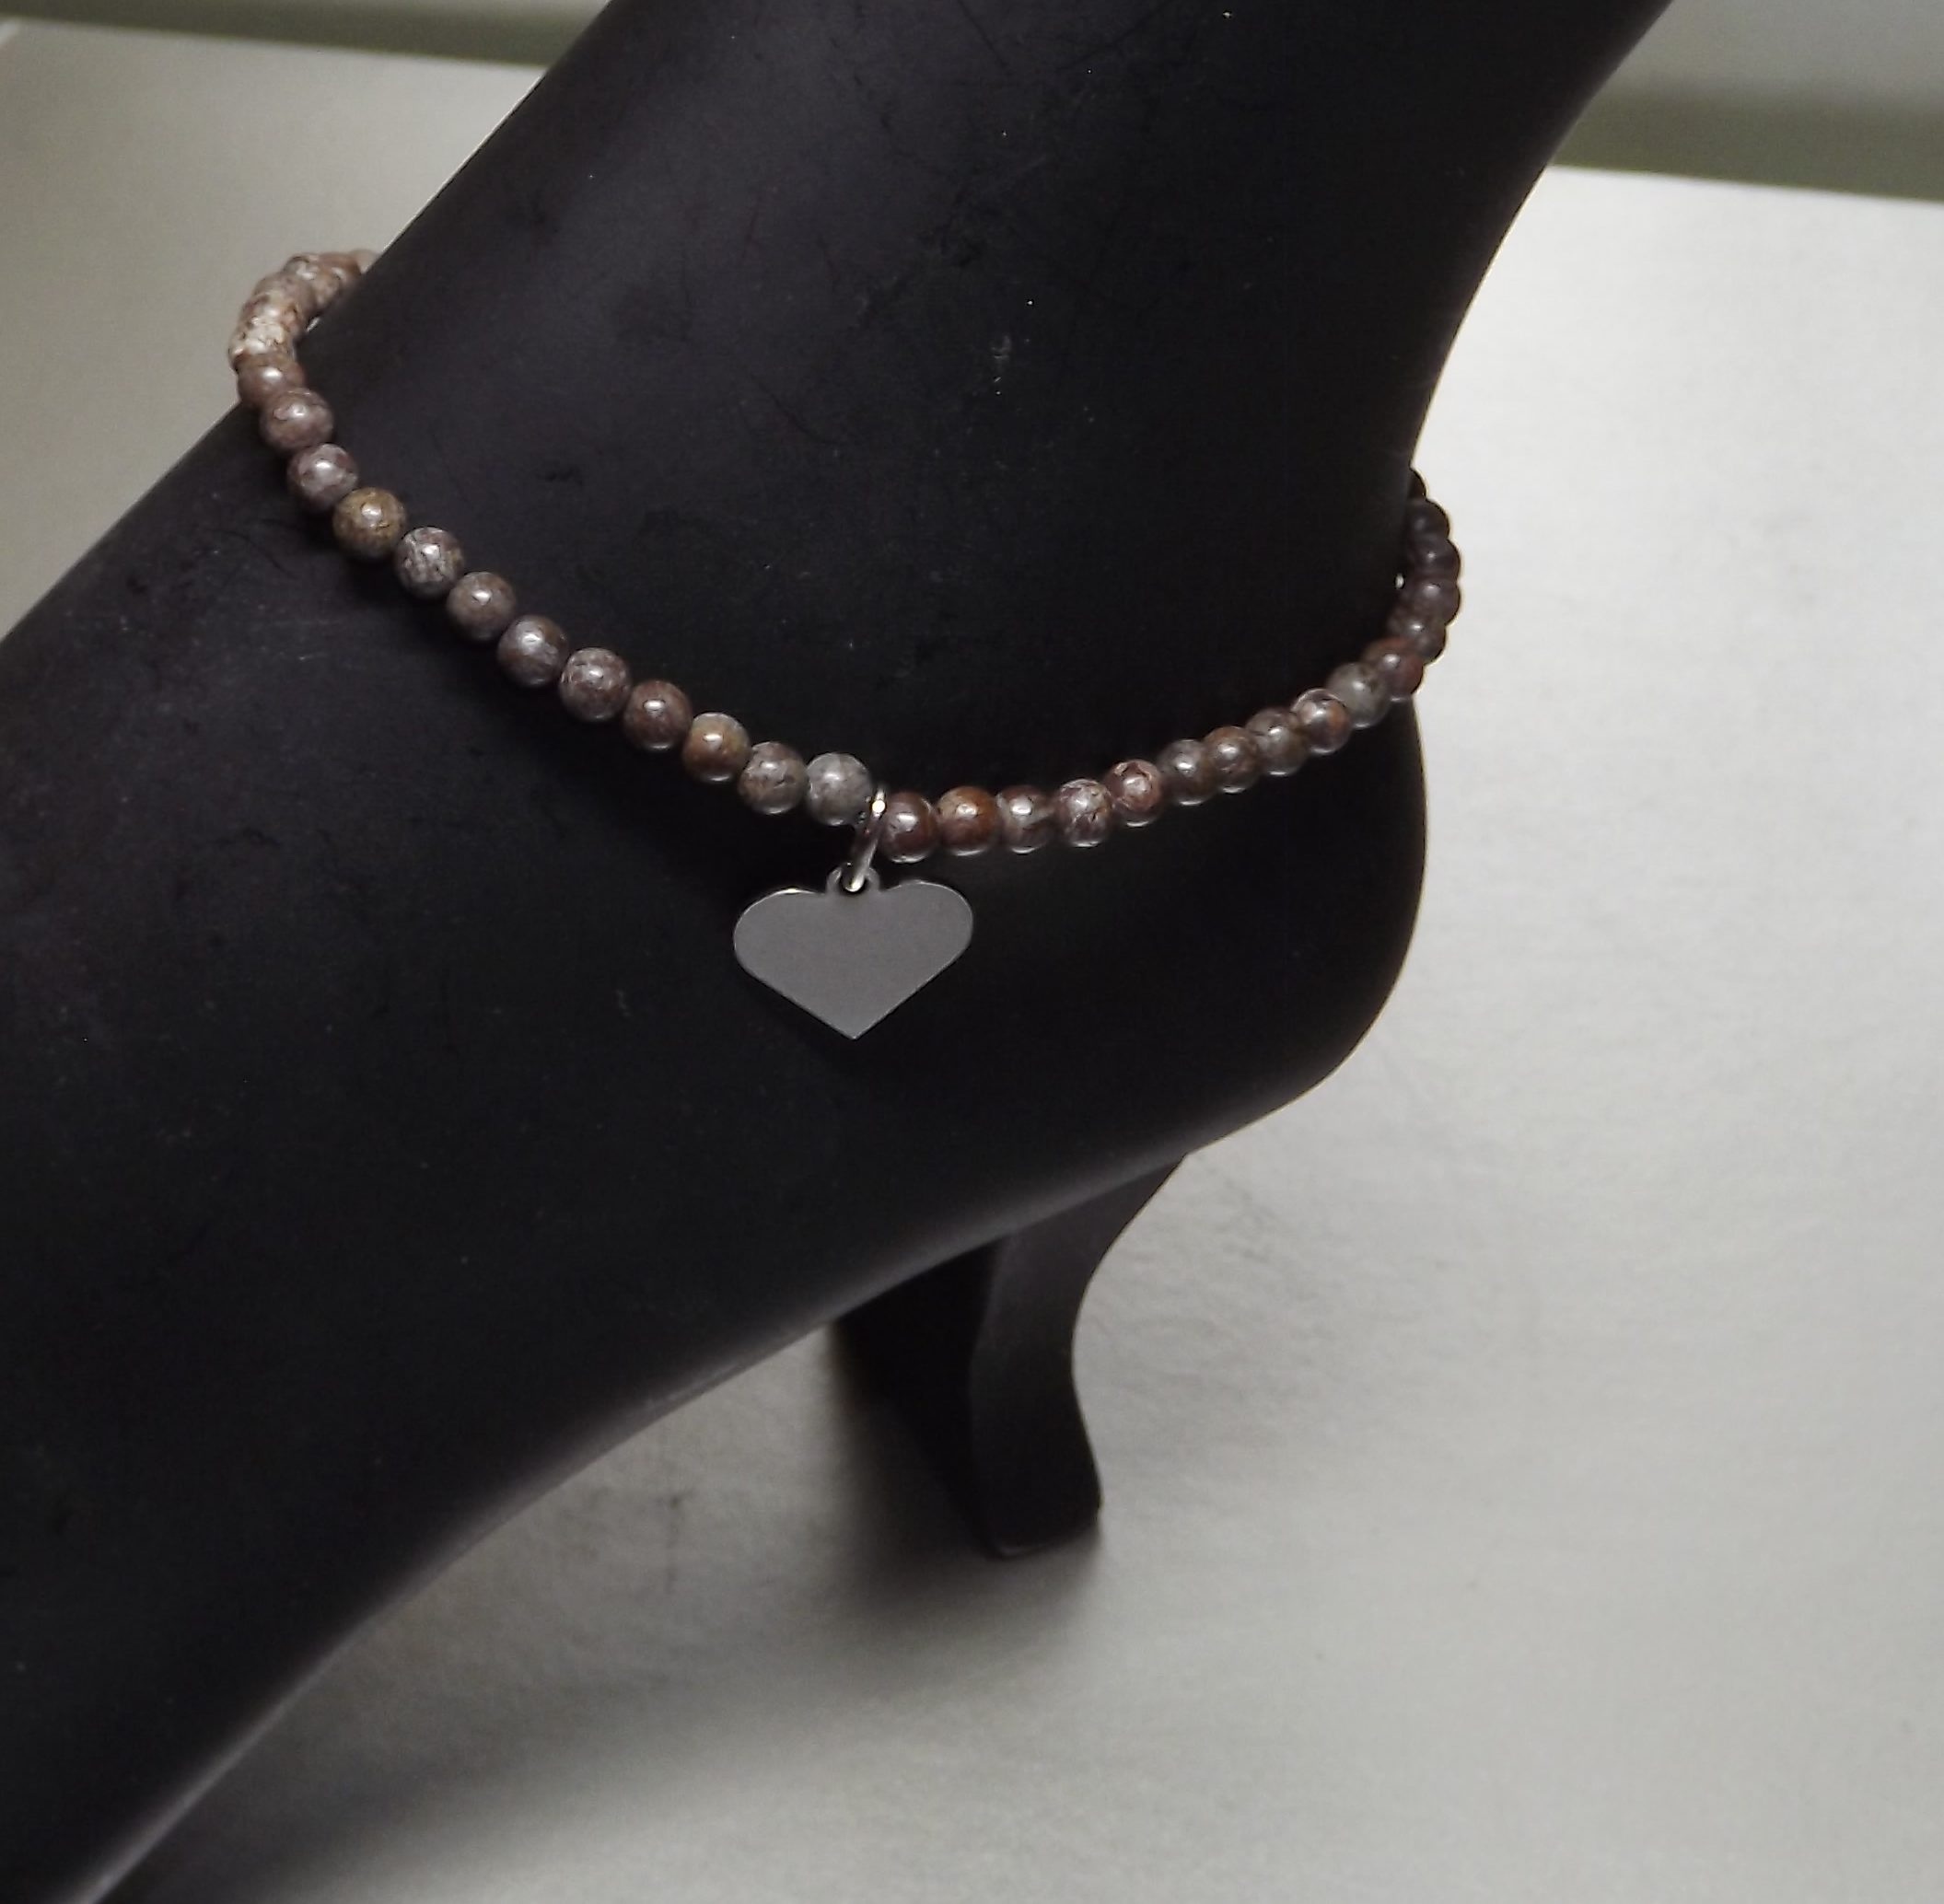 home youtube anklets anklet make key at jewelry to how making watch